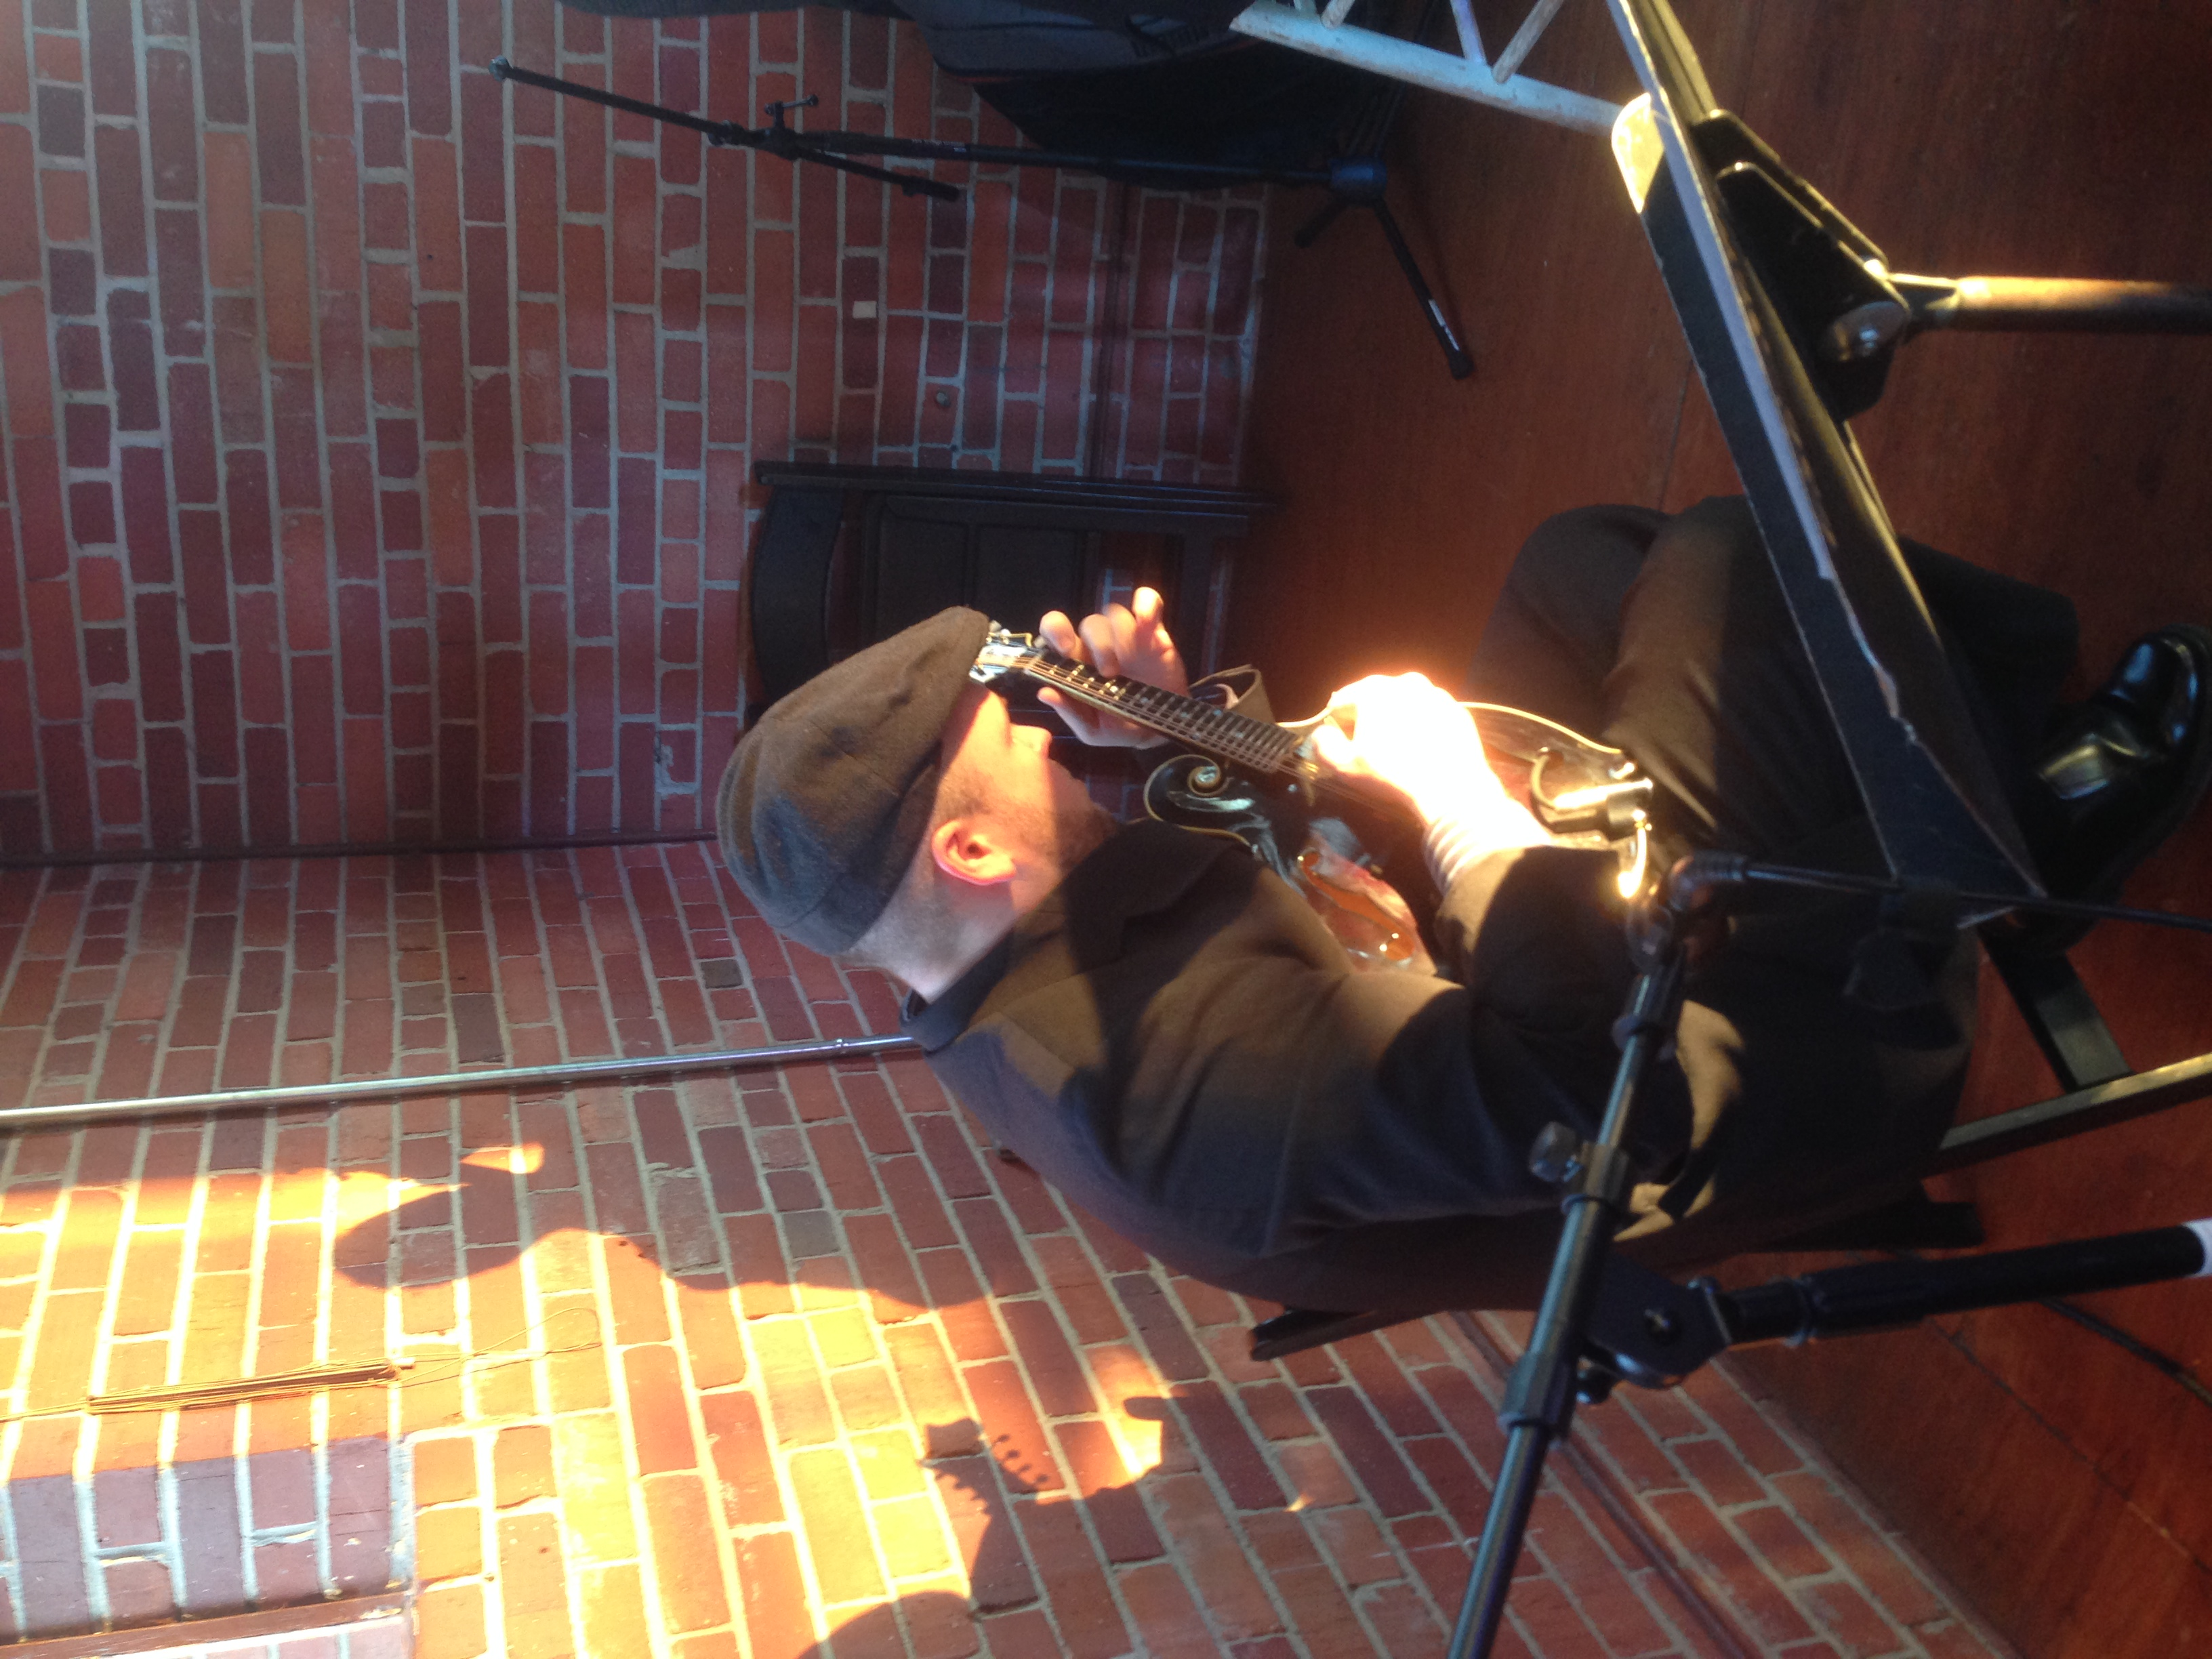 Jesse Jones, mandolinist rehearsing before the concert. I loved the way the sun was shining on his hands!